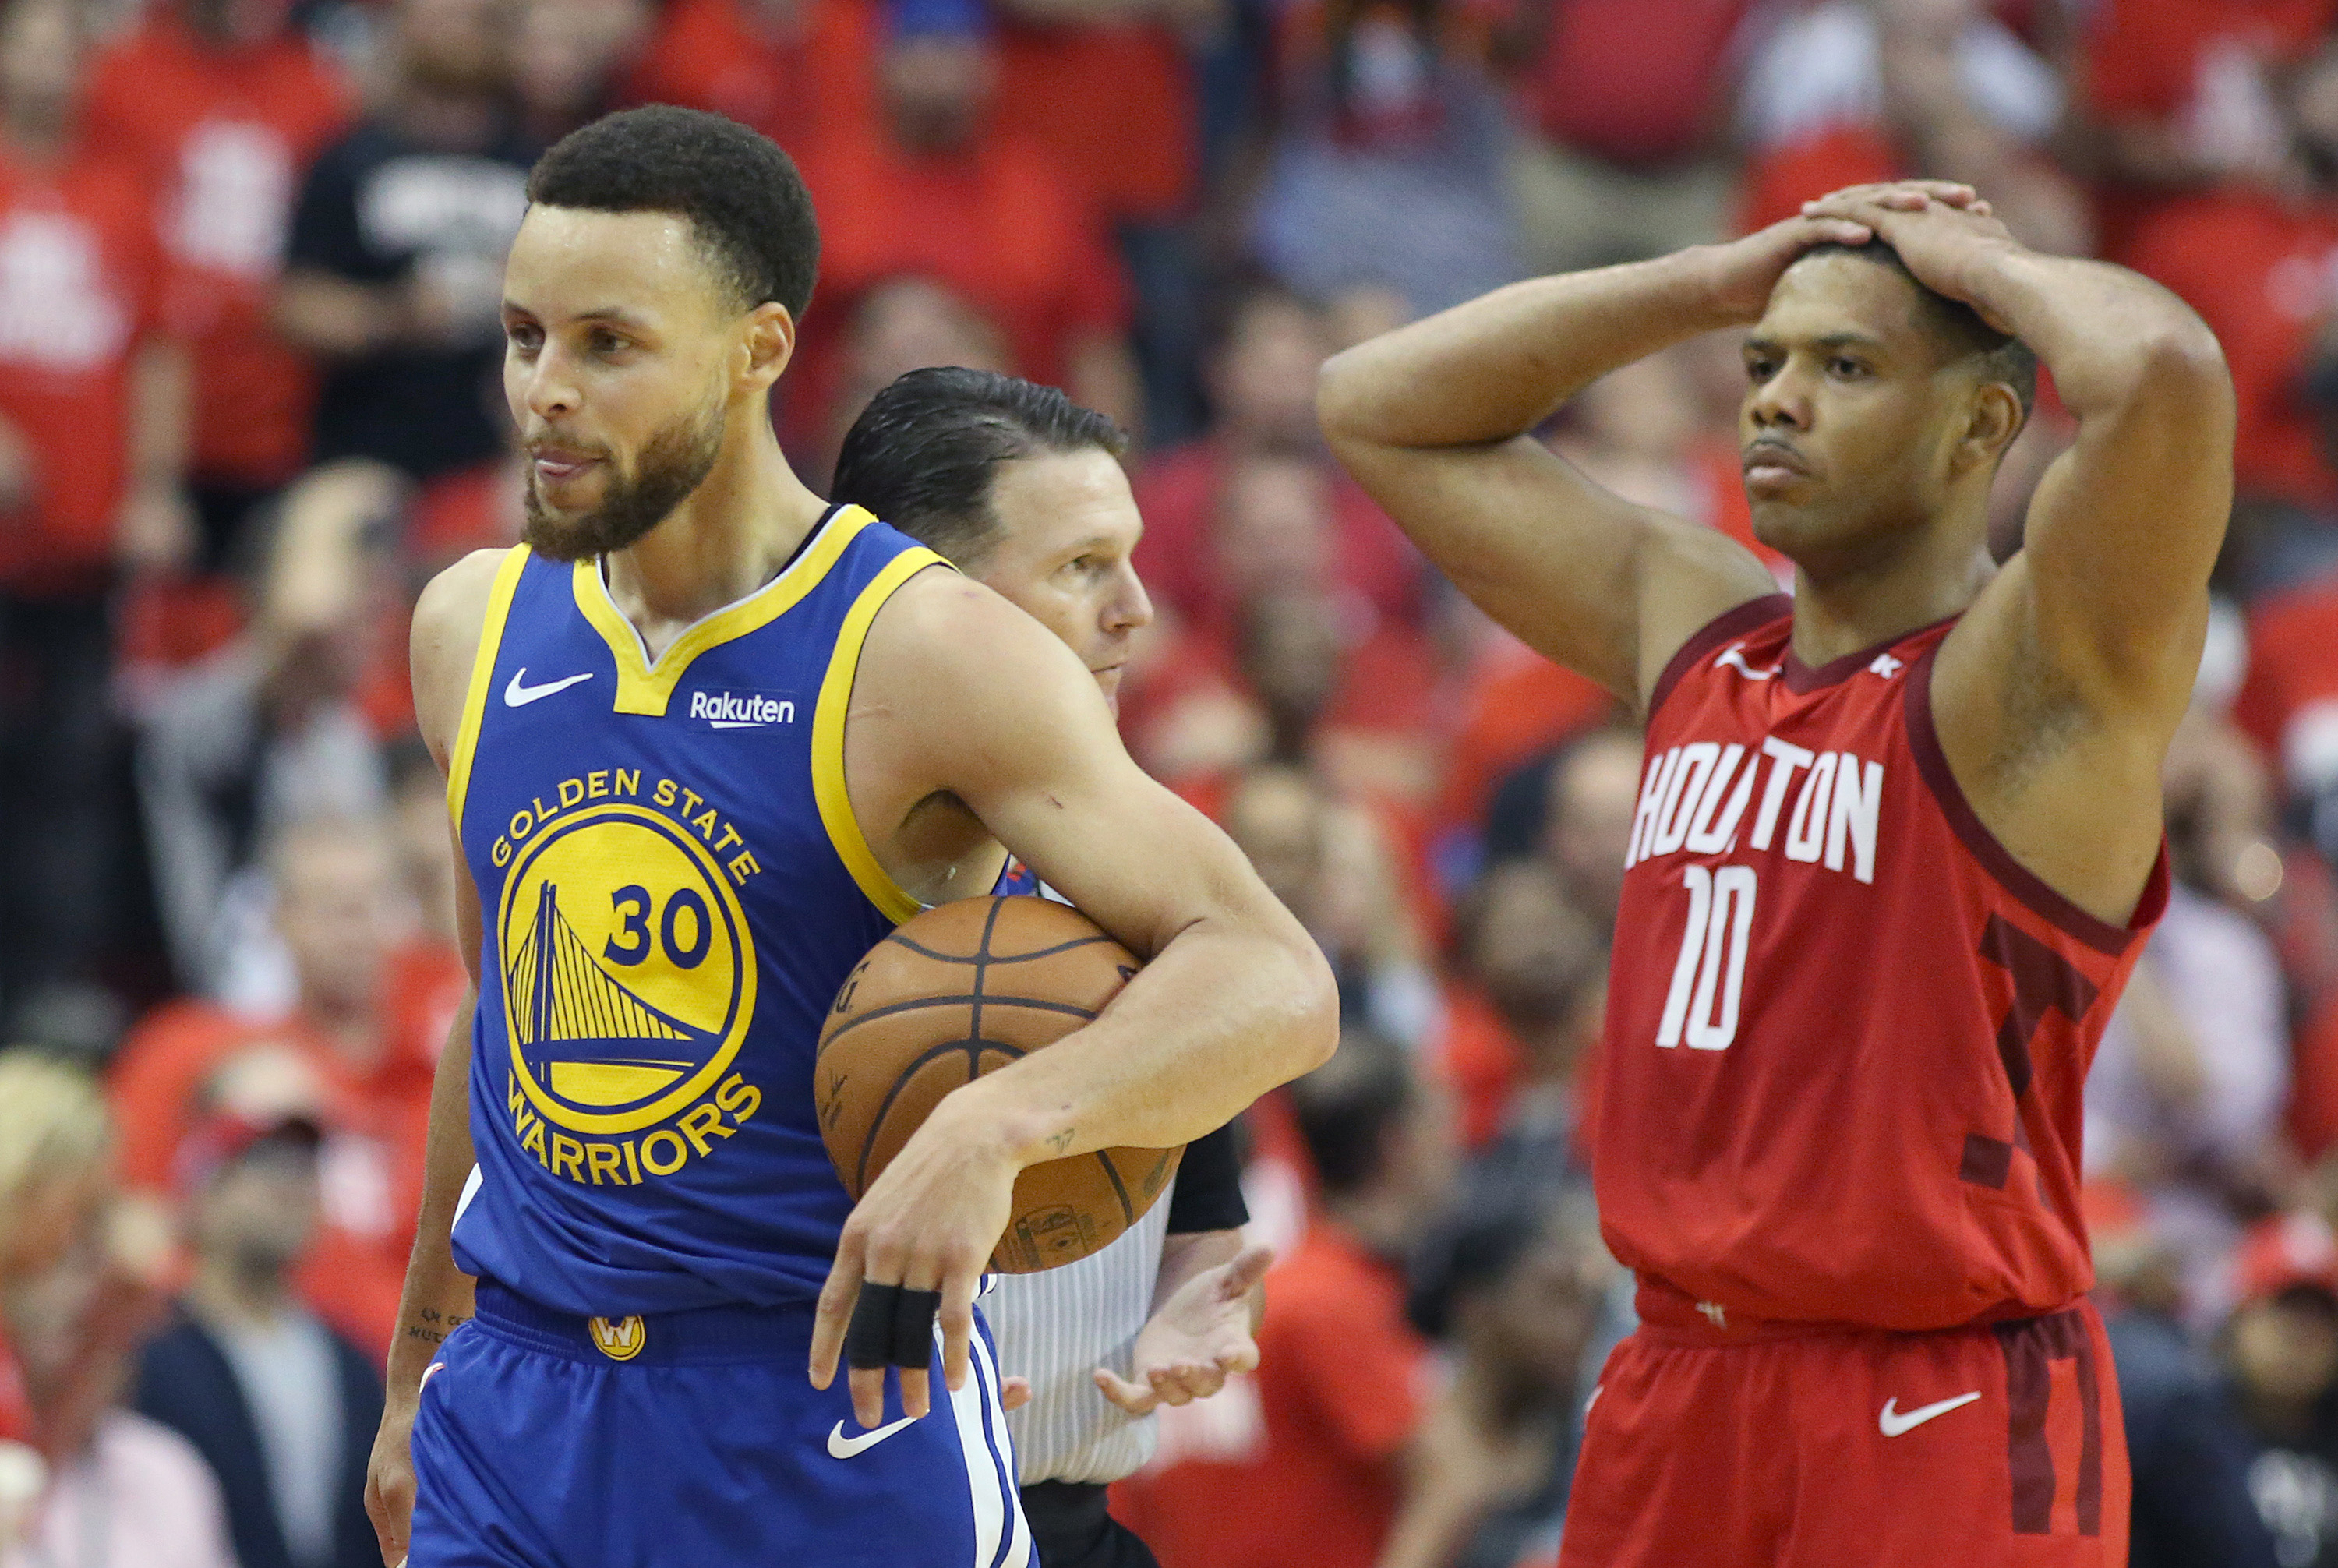 This Rockets loss to the Warriors was worse than all the others